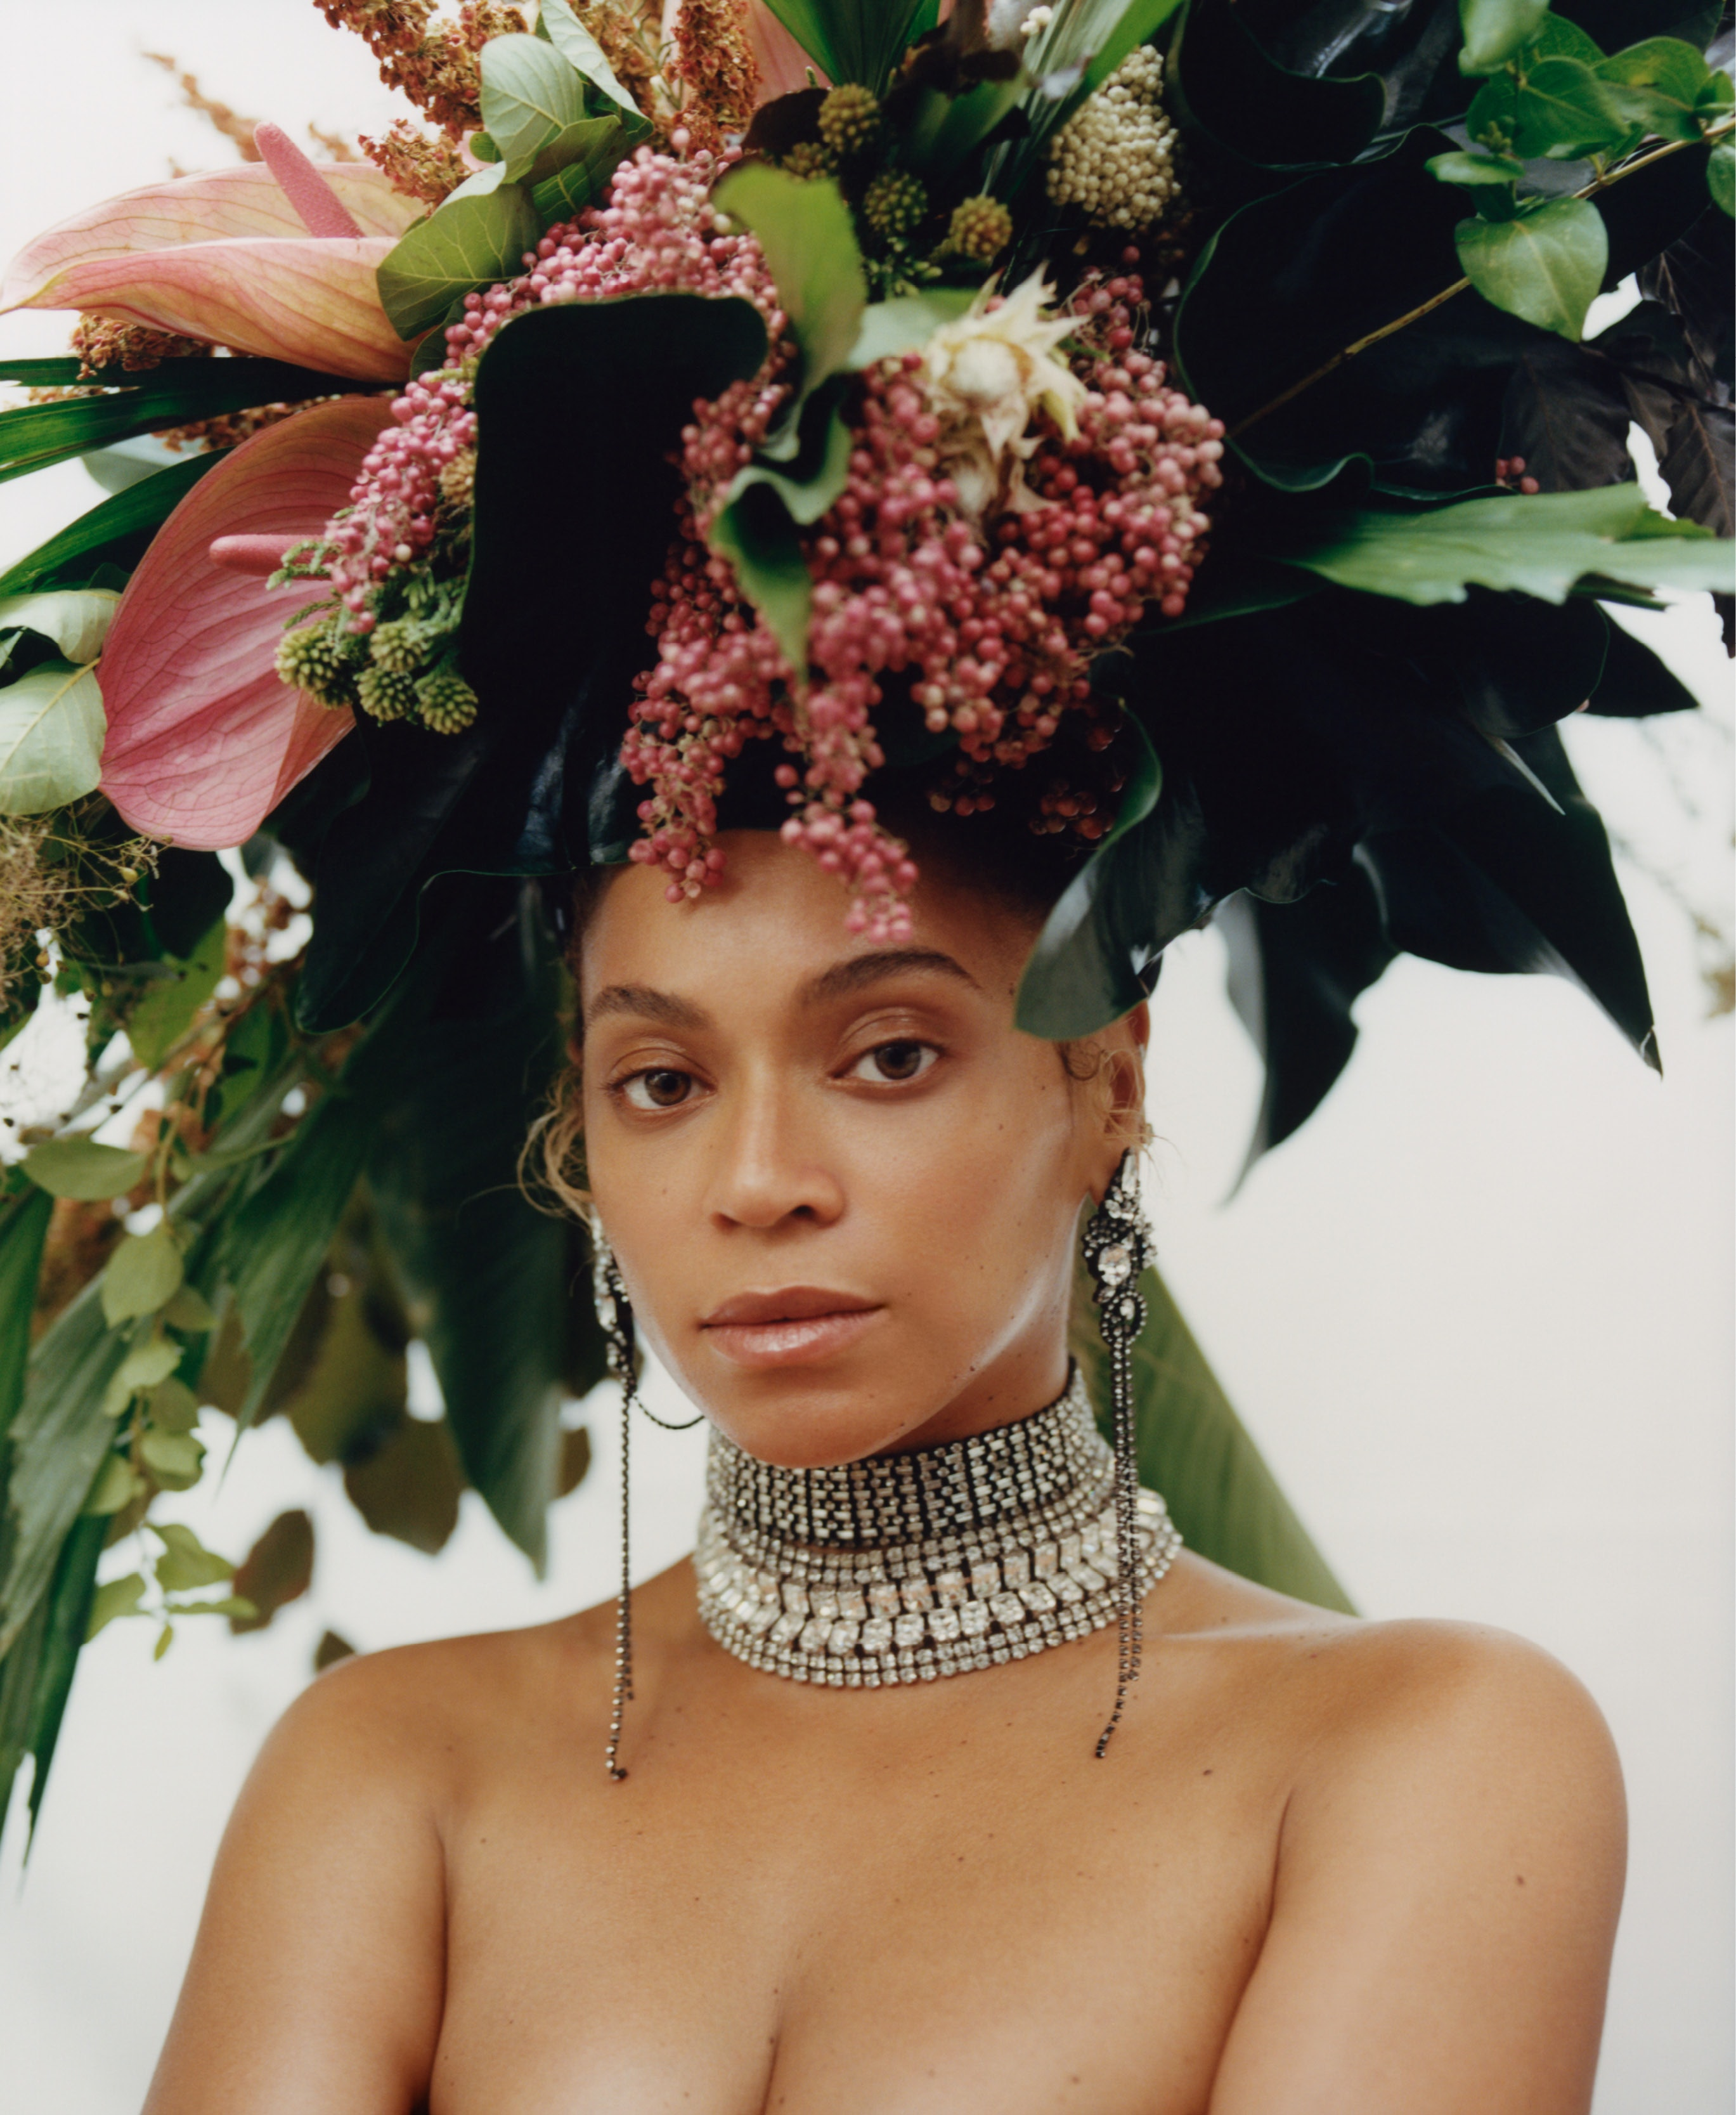 Beyonces september vogue cover is all about natural bodies beyonces september vogue cover is all about natural bodies and lots of flowers izmirmasajfo